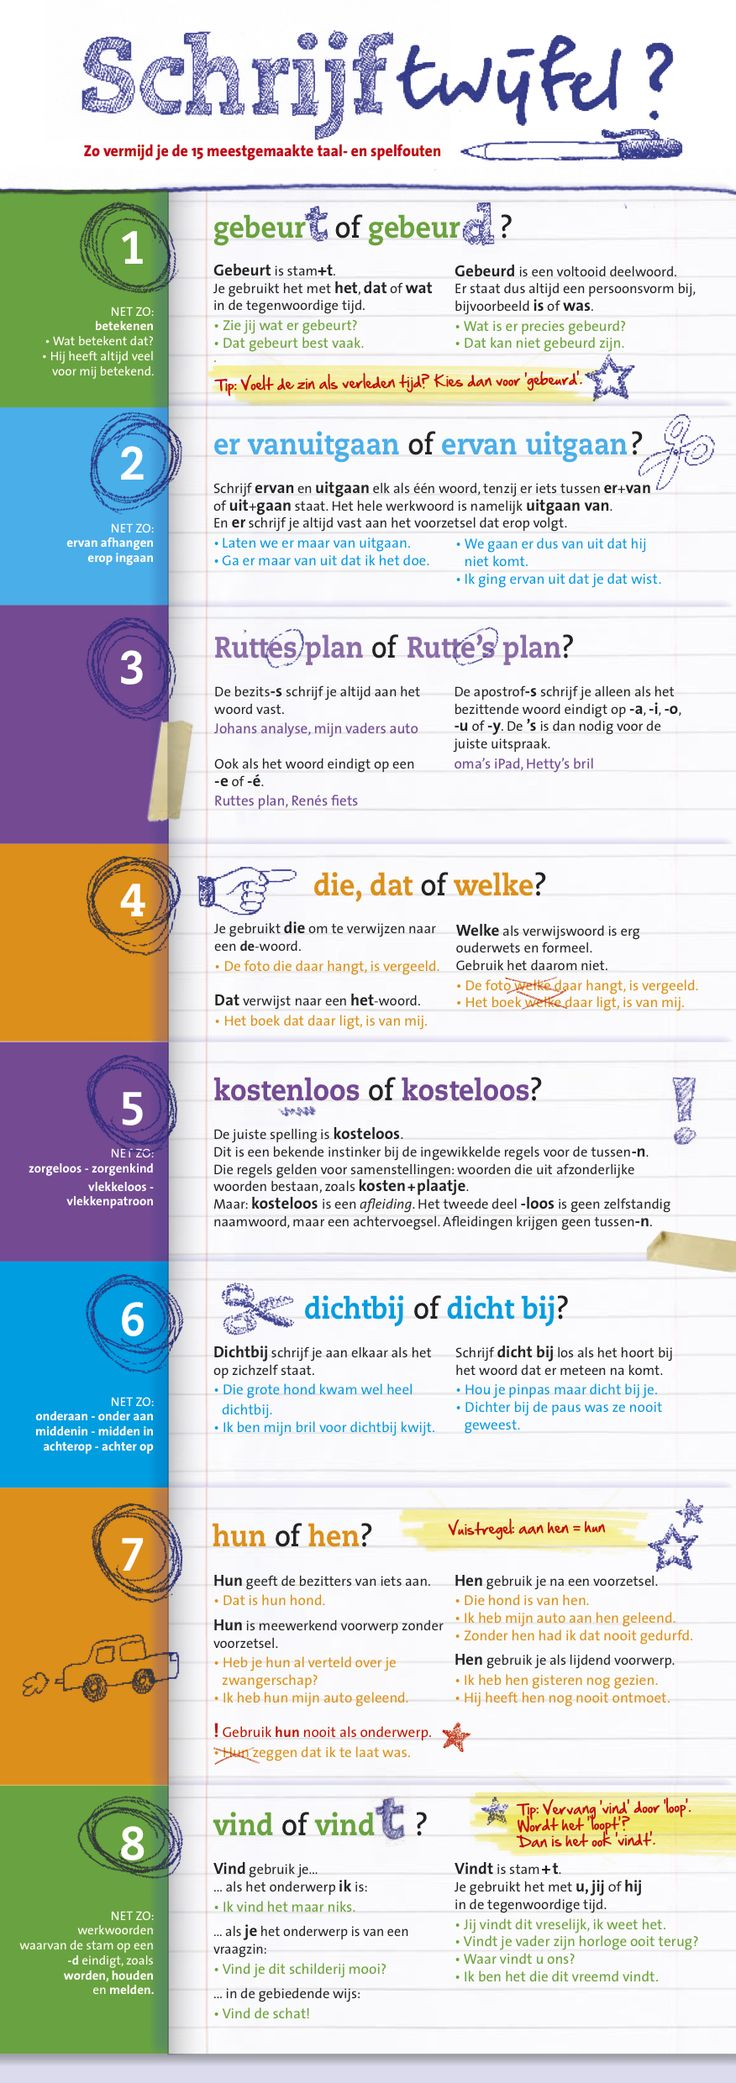 infographic-definitief-nov2014.jpg 876×2.480 pixels